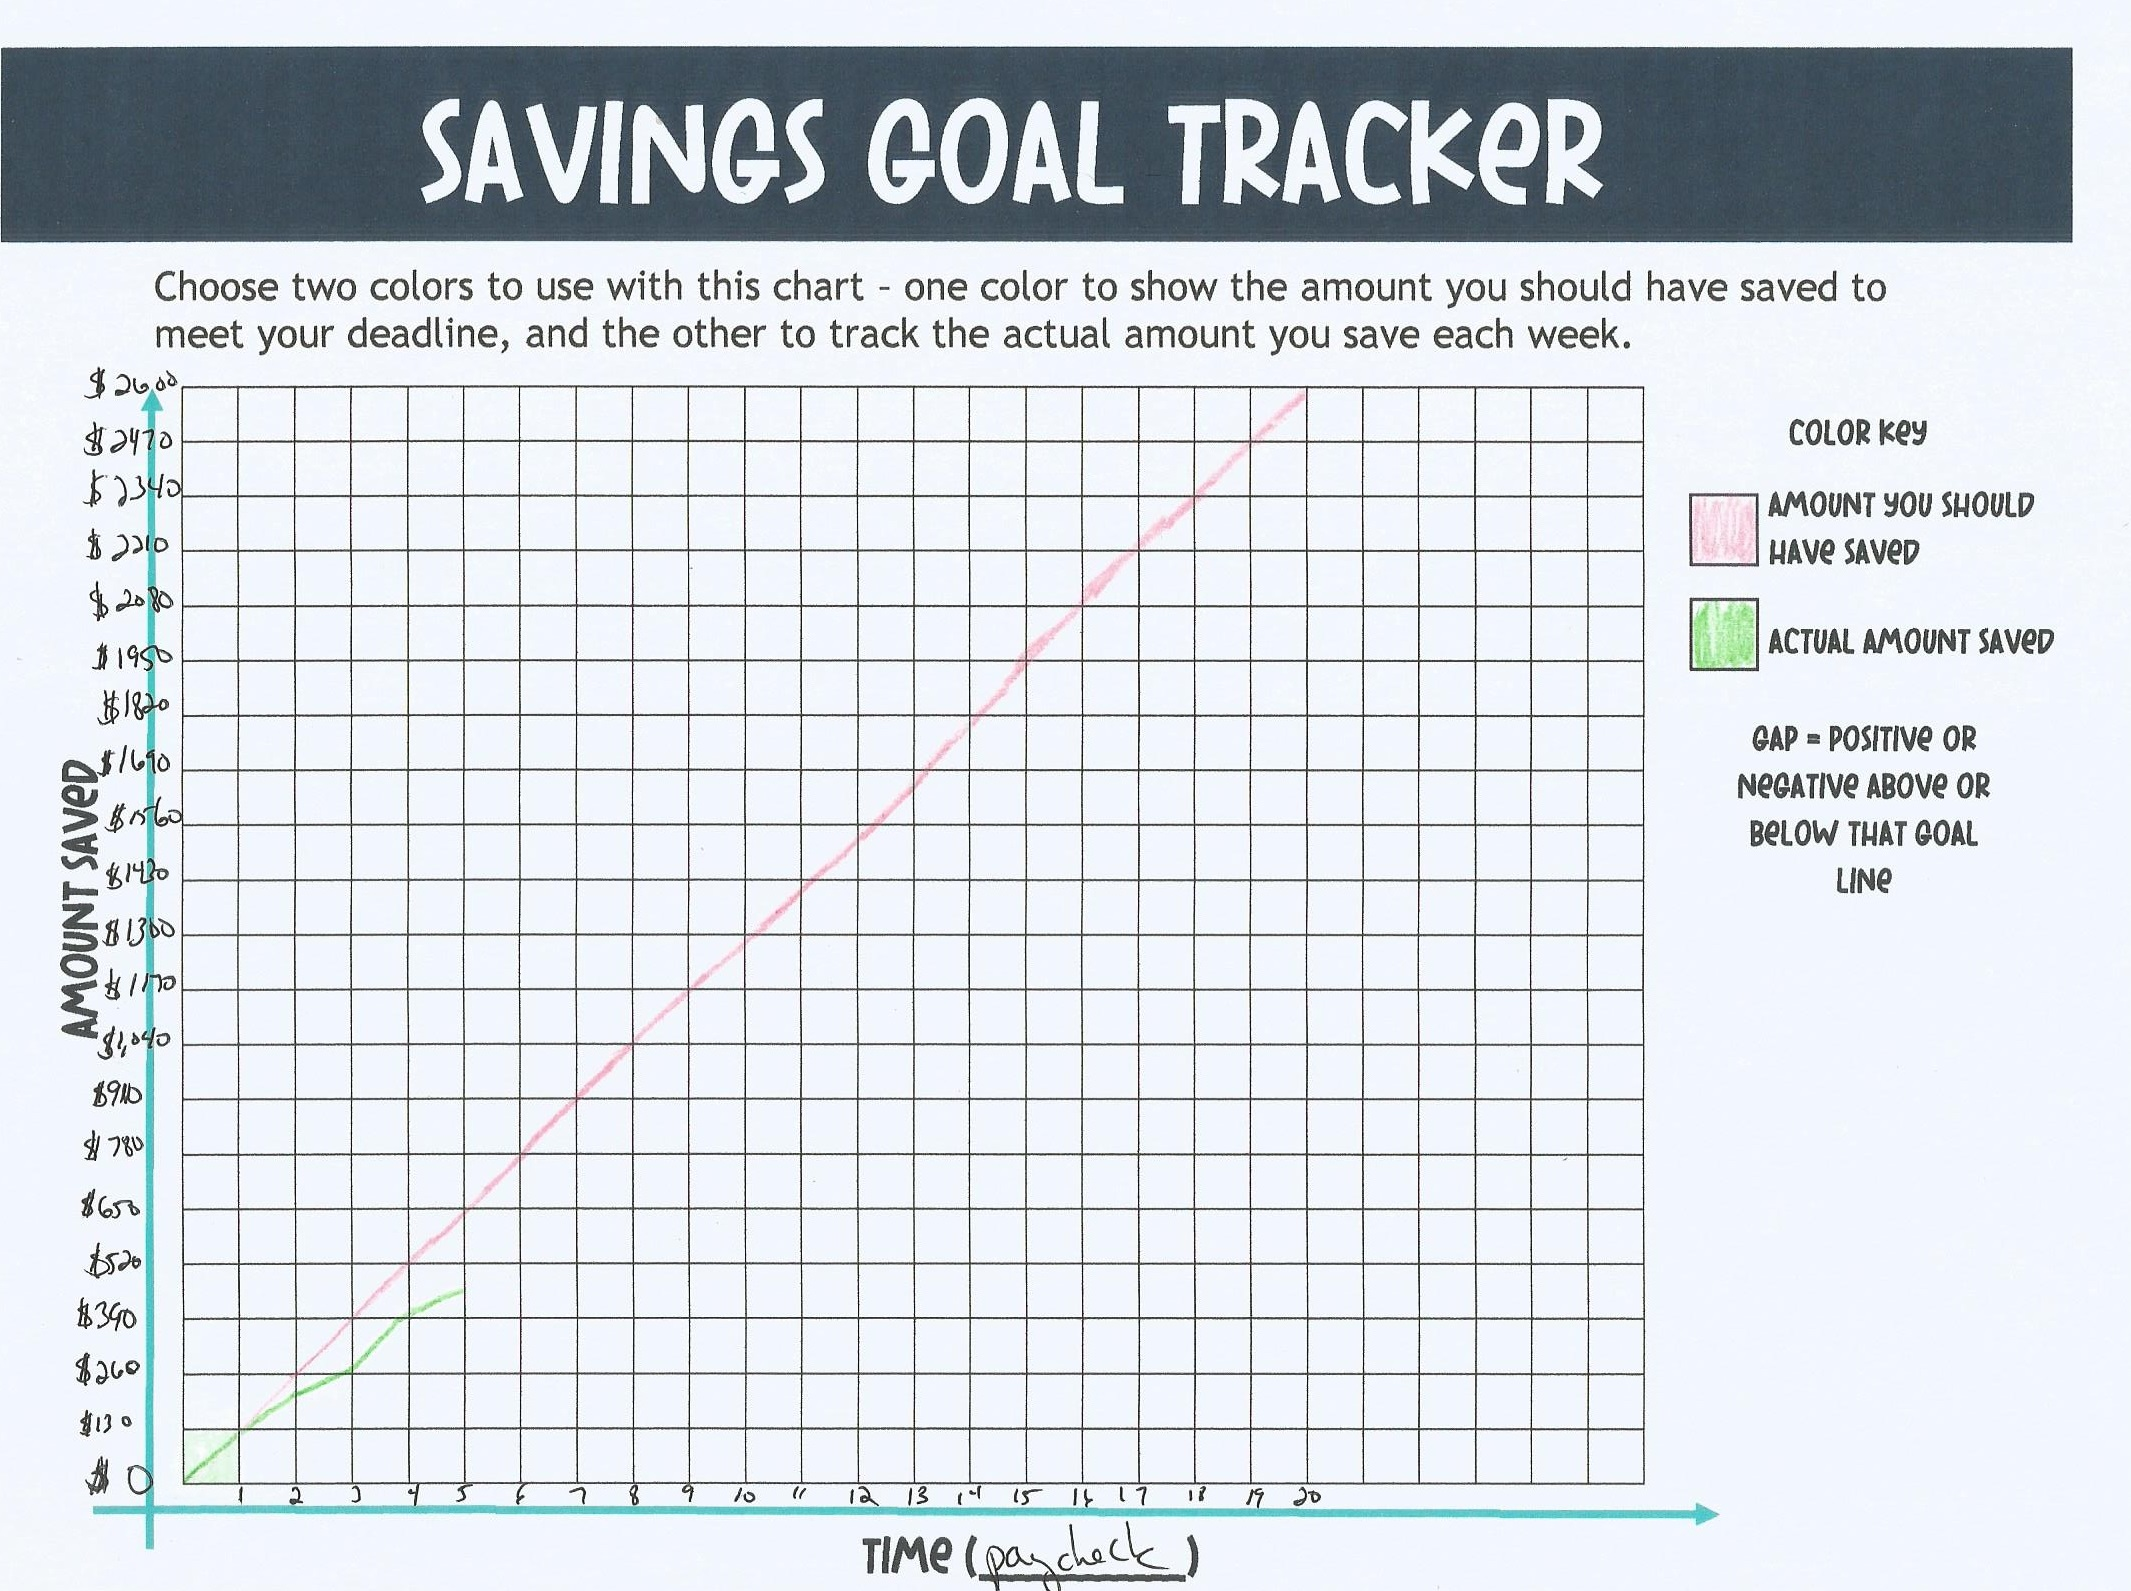 savings goal tracker filled in with the example, pink for amount you should save, green for actual amount saved